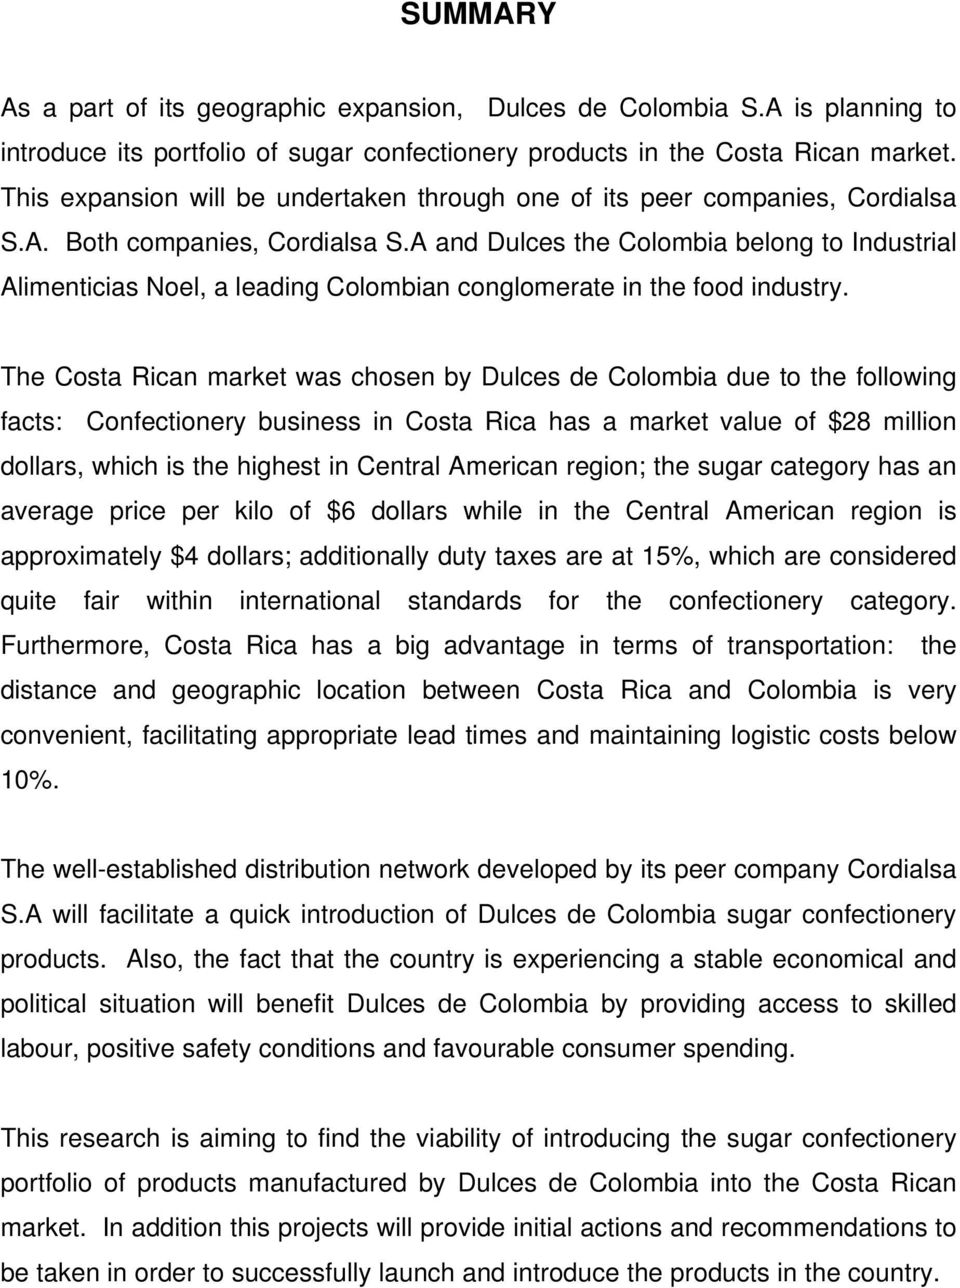 A and Dulces the Colombia belong to Industrial Alimenticias Noel, a leading Colombian conglomerate in the food industry.